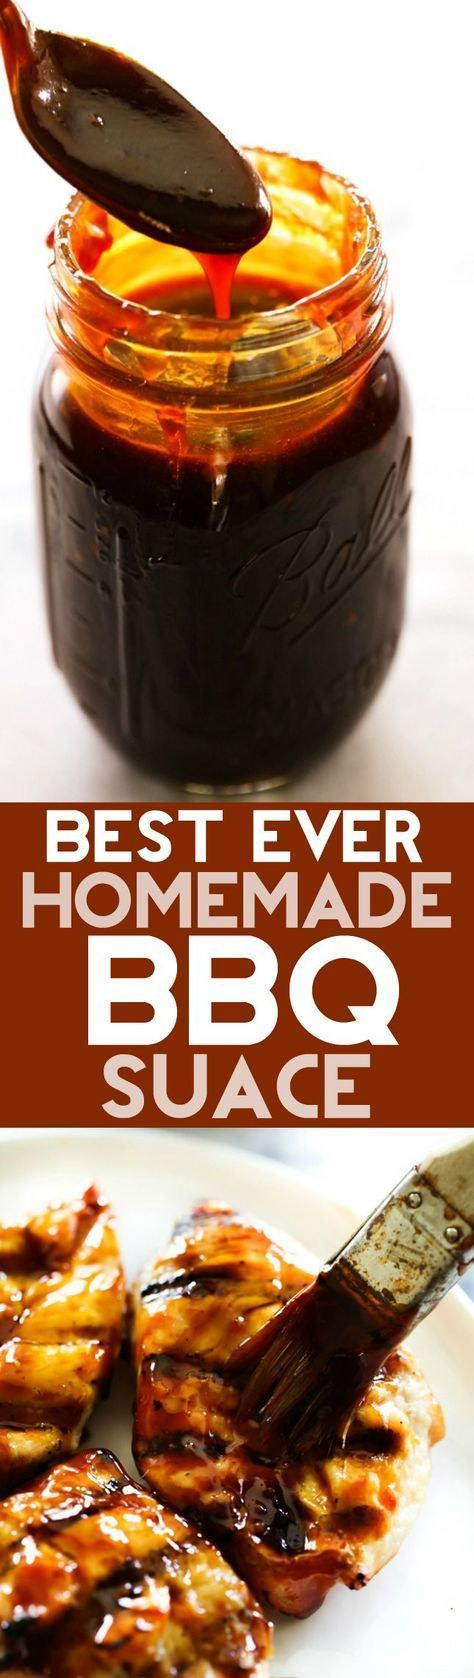 BEST EVER Homemade BBQ Sauce... This will be THE BEST BBQ Sauce you ever have! It is deliciously sweet and tangy with a flavor that can't be beat and is super easy to make!